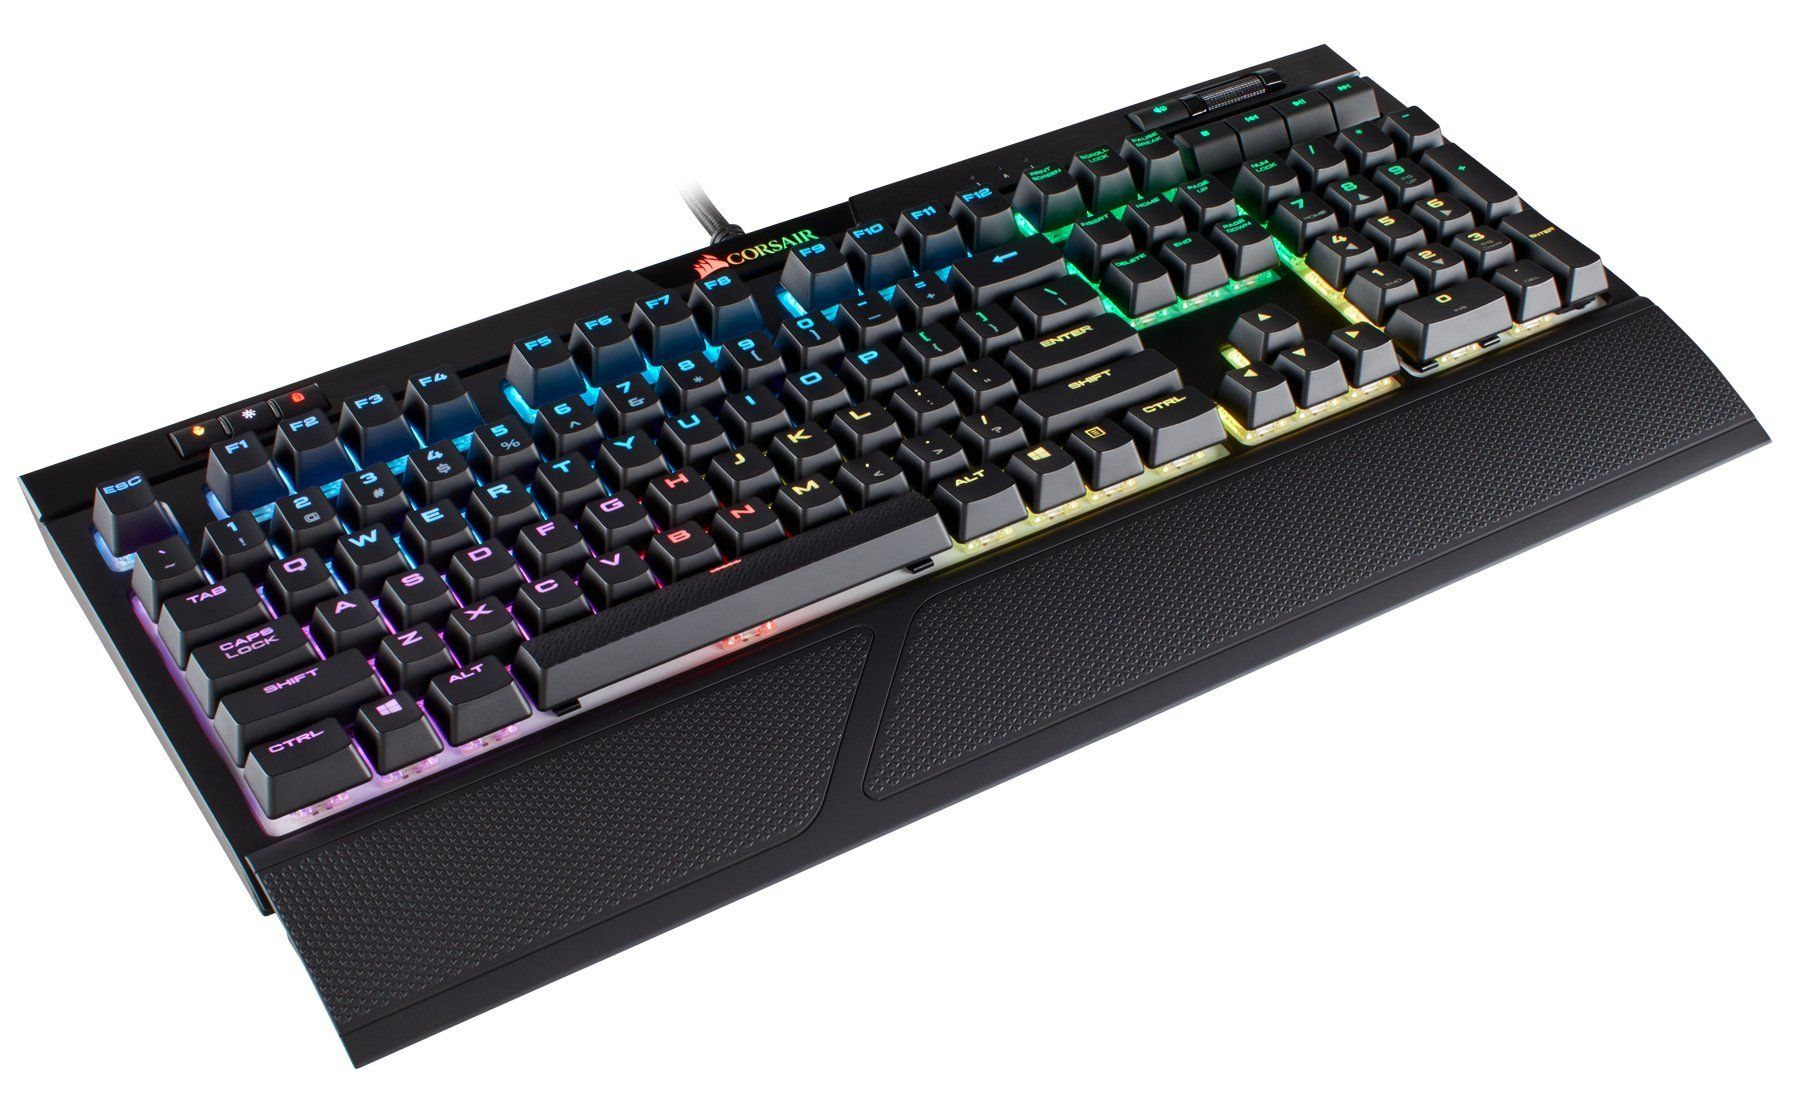 Corsair Strafe Rgb Mk 2 Mechanical Gaming Keyboard Usb Passthrough Linear And Quiet Cherry Mx Red Switch Keyboard Cool Things To Buy Best Gaming Headset